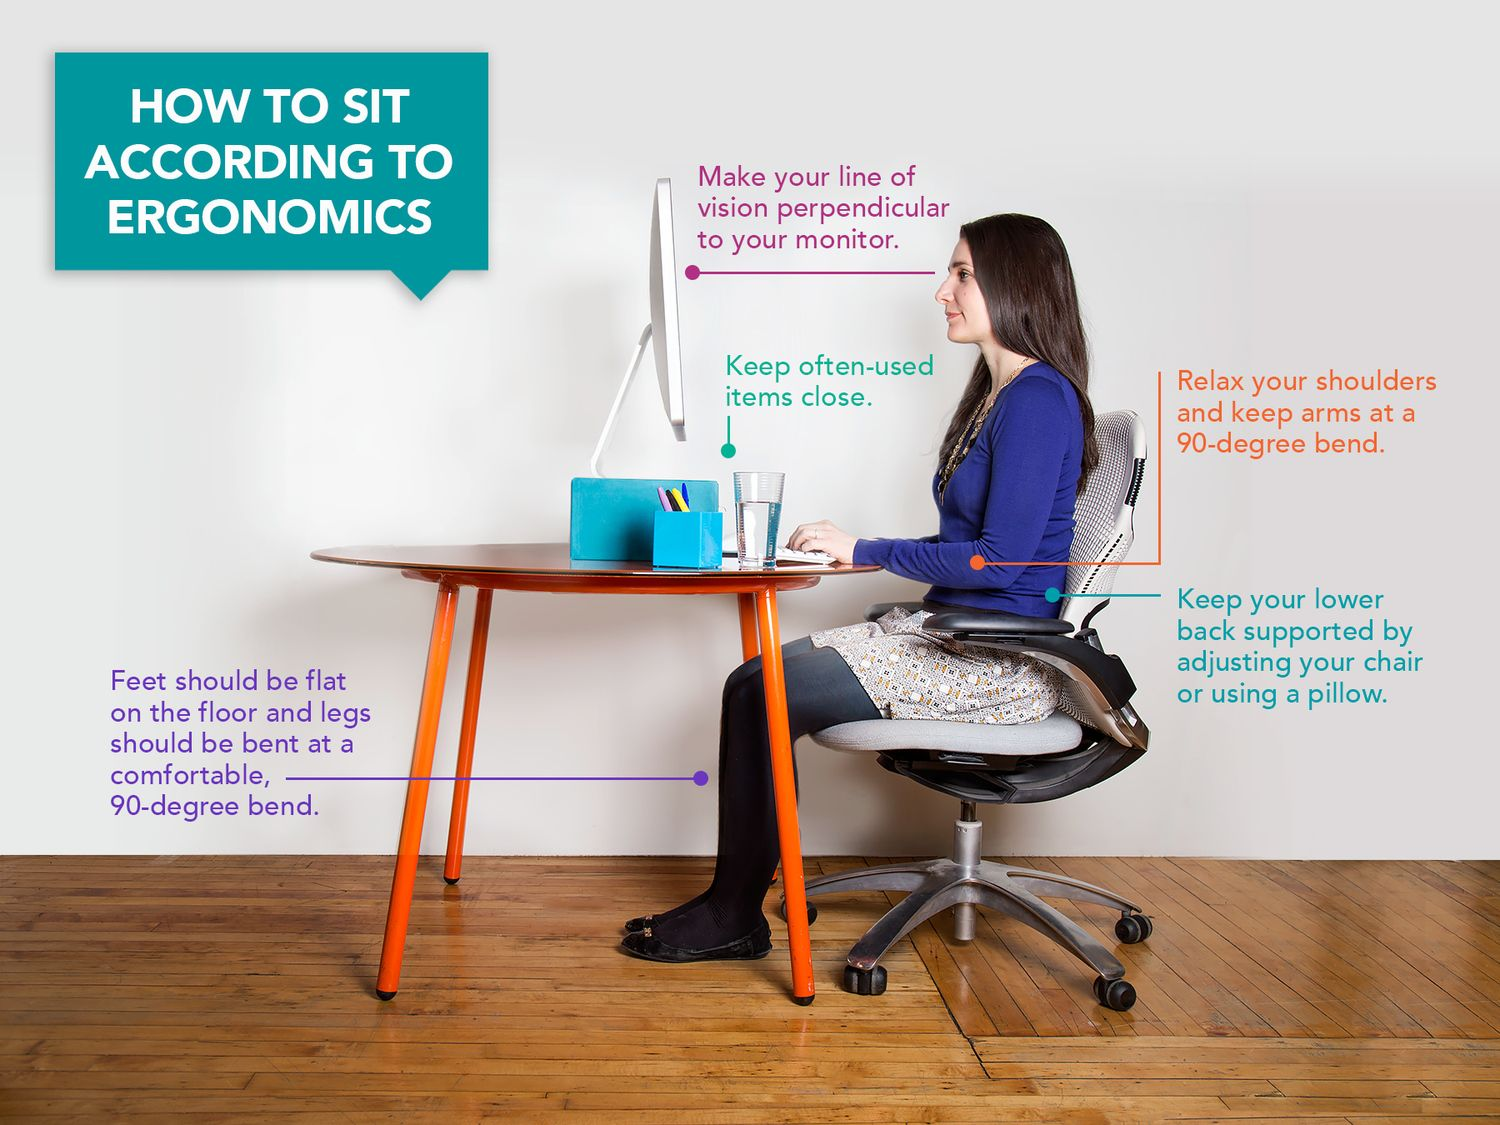 Proper Chair Posture At Computer Gym Mini Peddler Heres How You Should Be Sitting Your Desk According